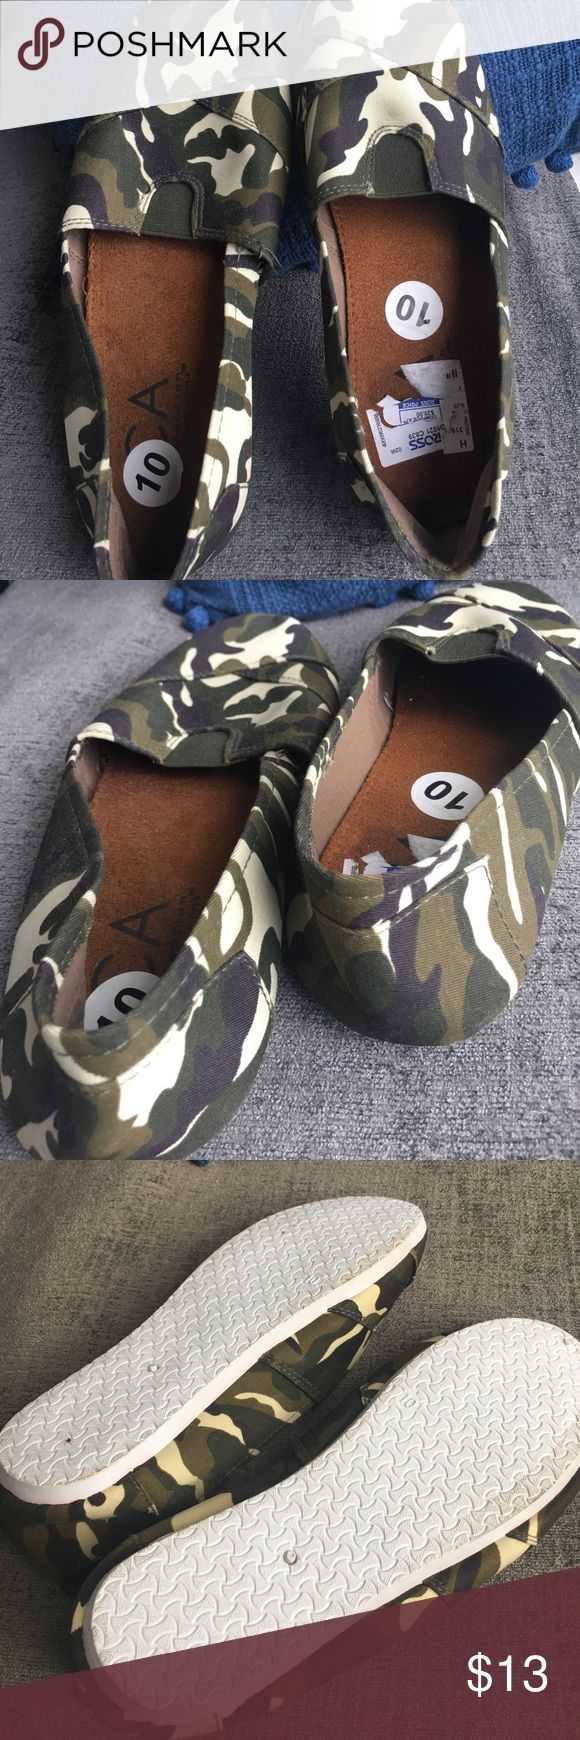 New camo Tom-like shoes New camo Tom-like shoes Shoes Flats & Loafers